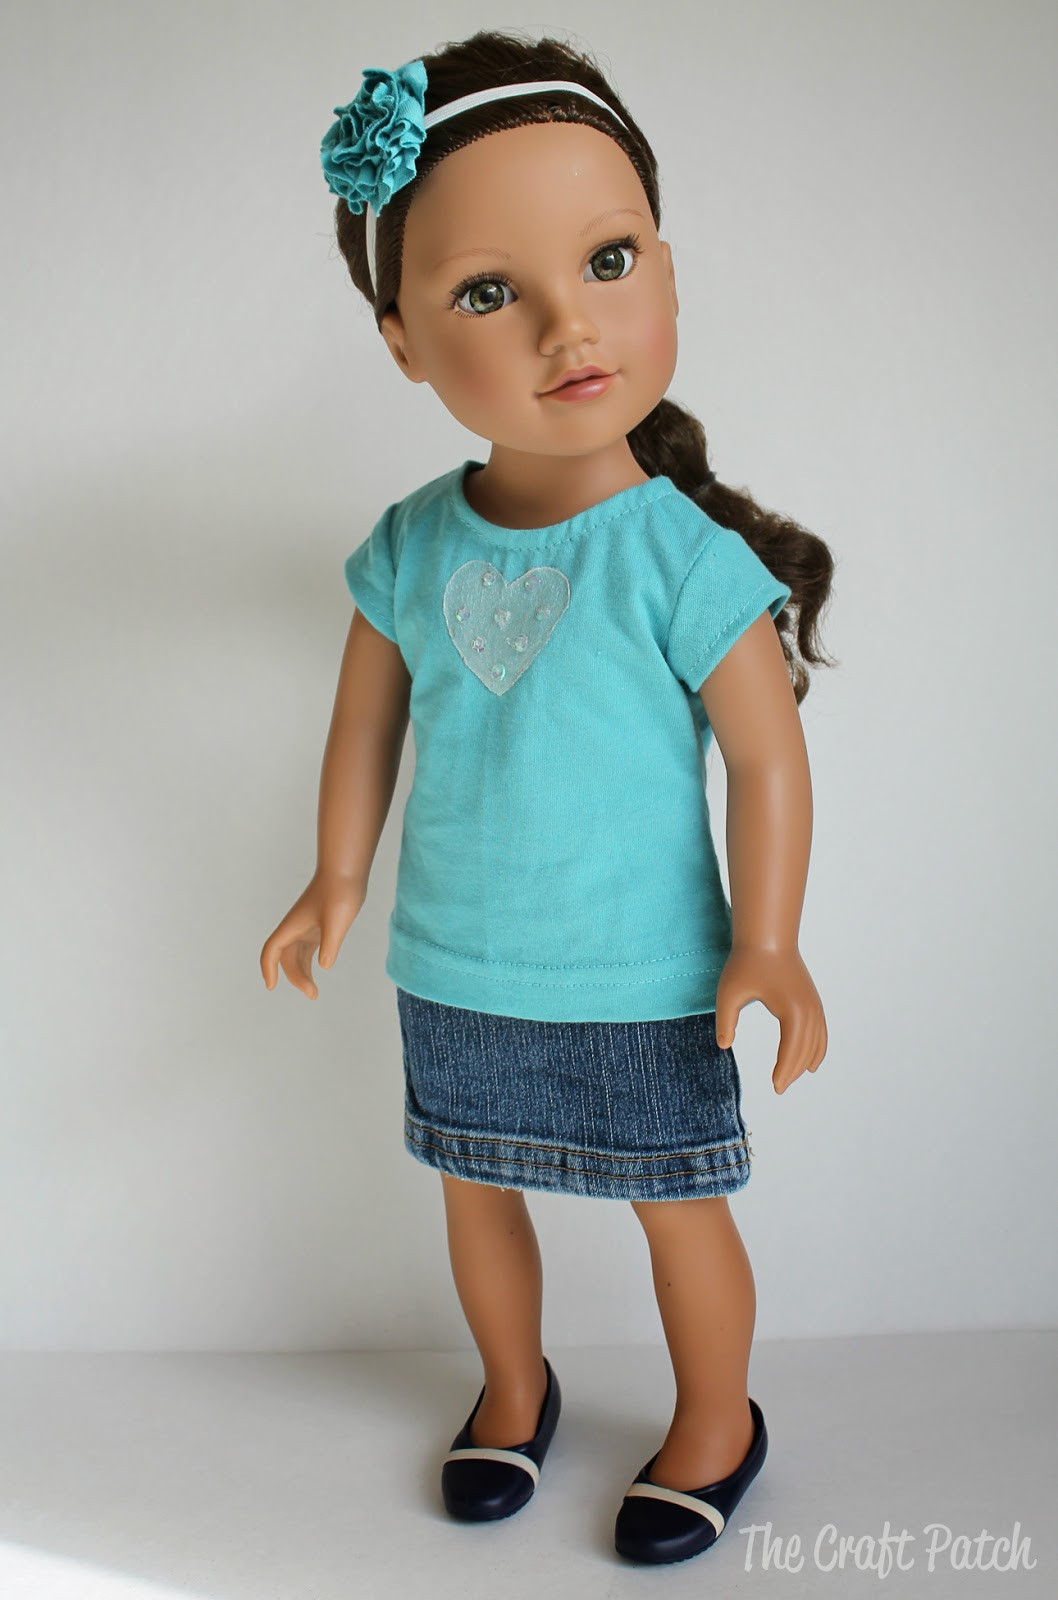 New American Girl Doll Clothes Yeah I Am Obsessed American Girl Doll Skirts Of Incredible 50 Ideas American Girl Doll Skirts